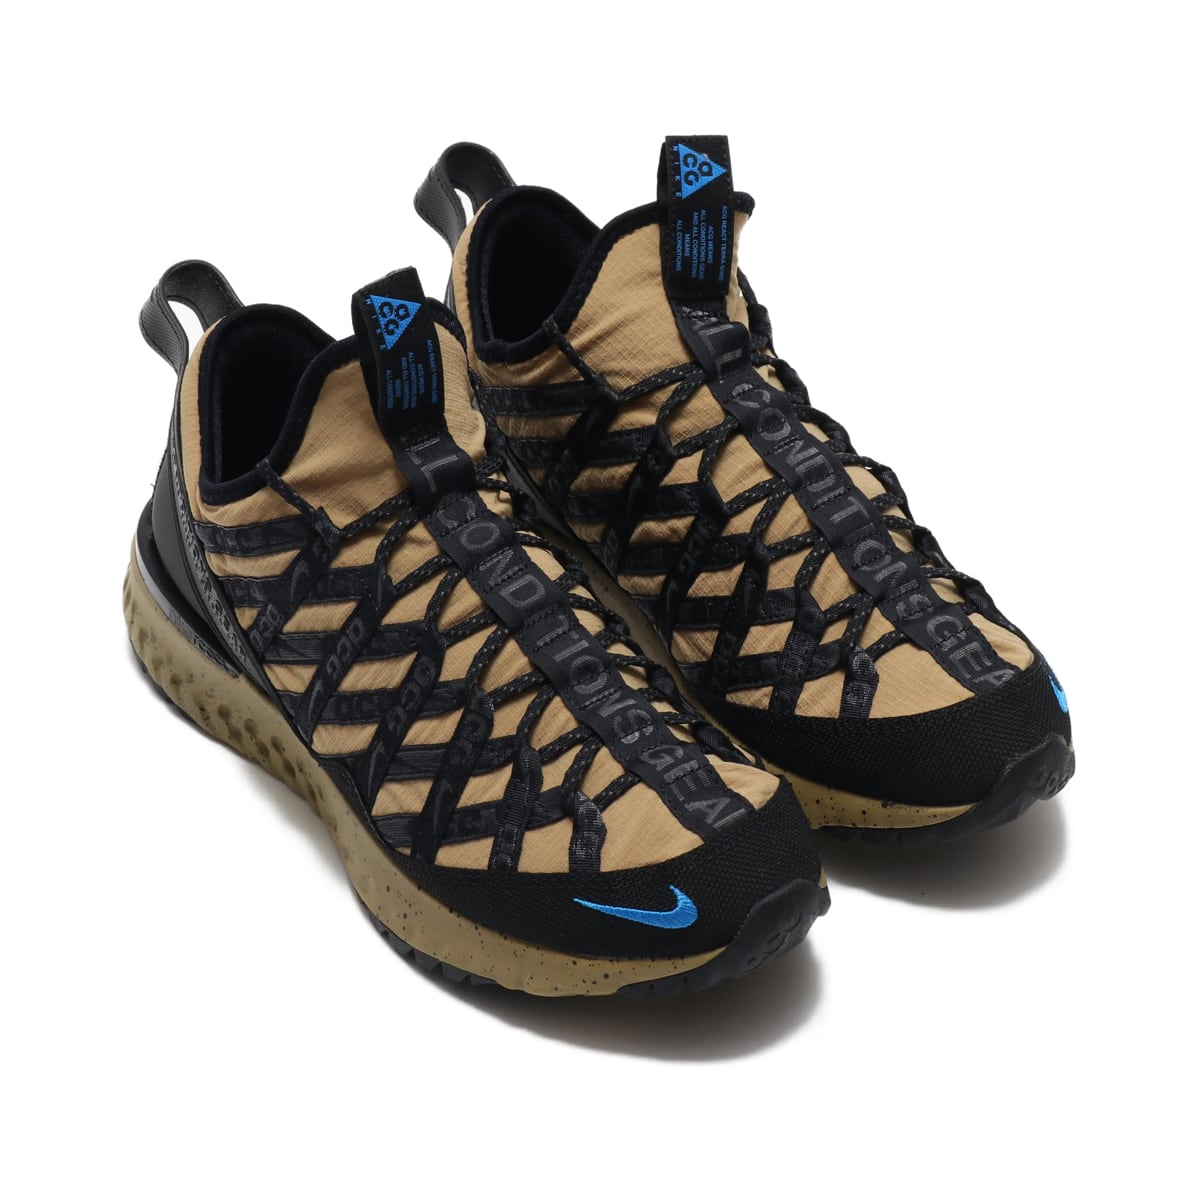 NIKE ACG REACT TERRA GOBE PARACHUTE BEIGE/LT PHOTO BLUE-BLACK 19FA-S_photo_large